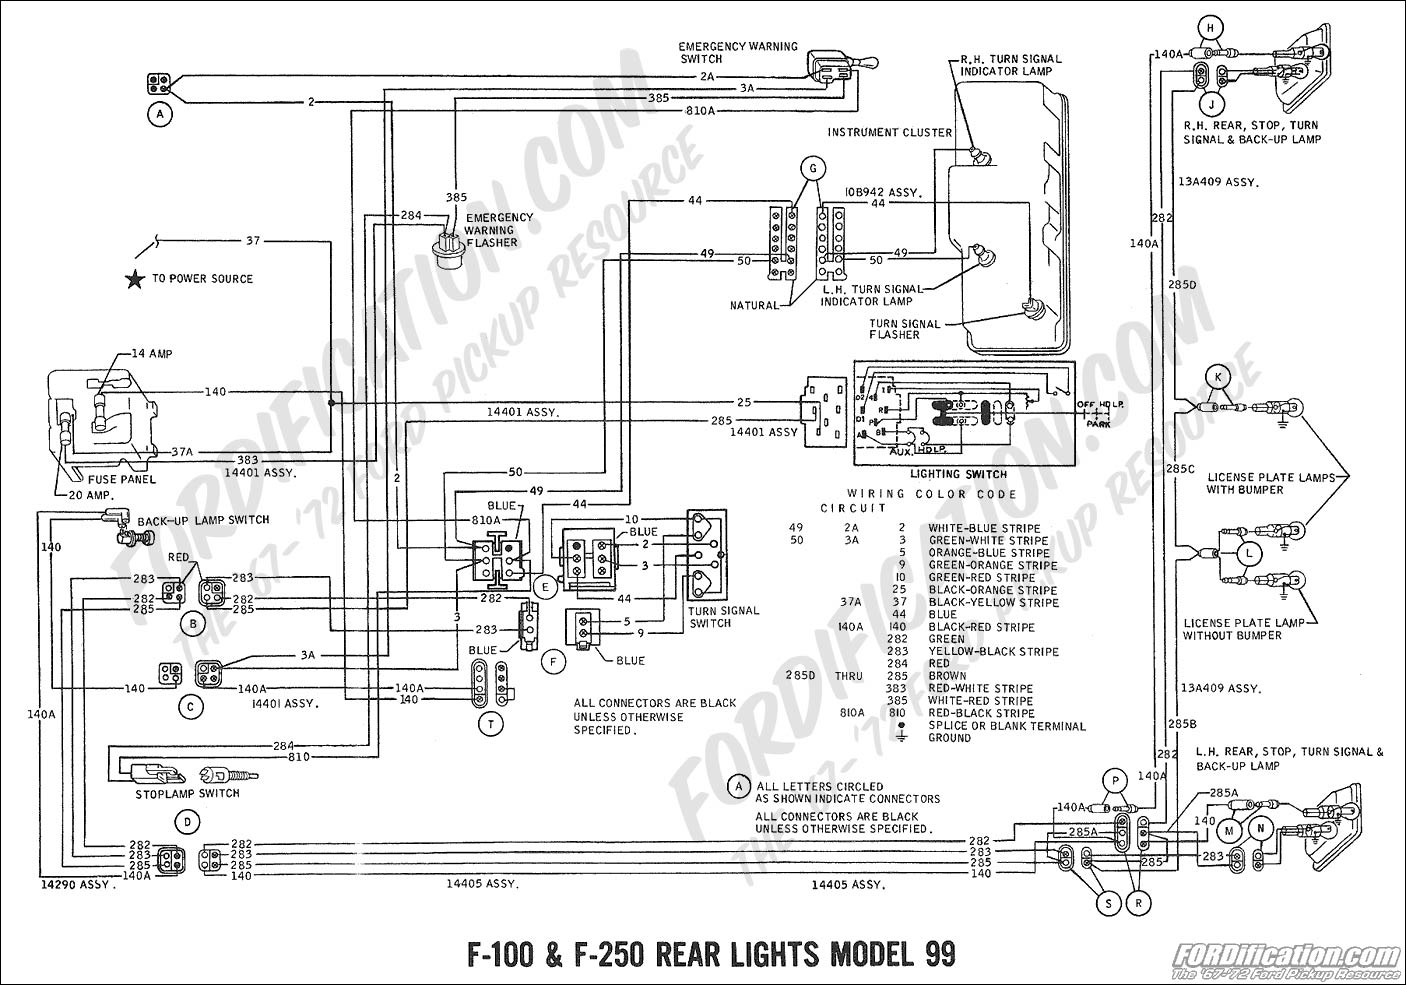 76 corvette starter wiring diagram free picture 69 turn signal    diagram    ford truck enthusiasts forums  69 turn signal    diagram    ford truck enthusiasts forums